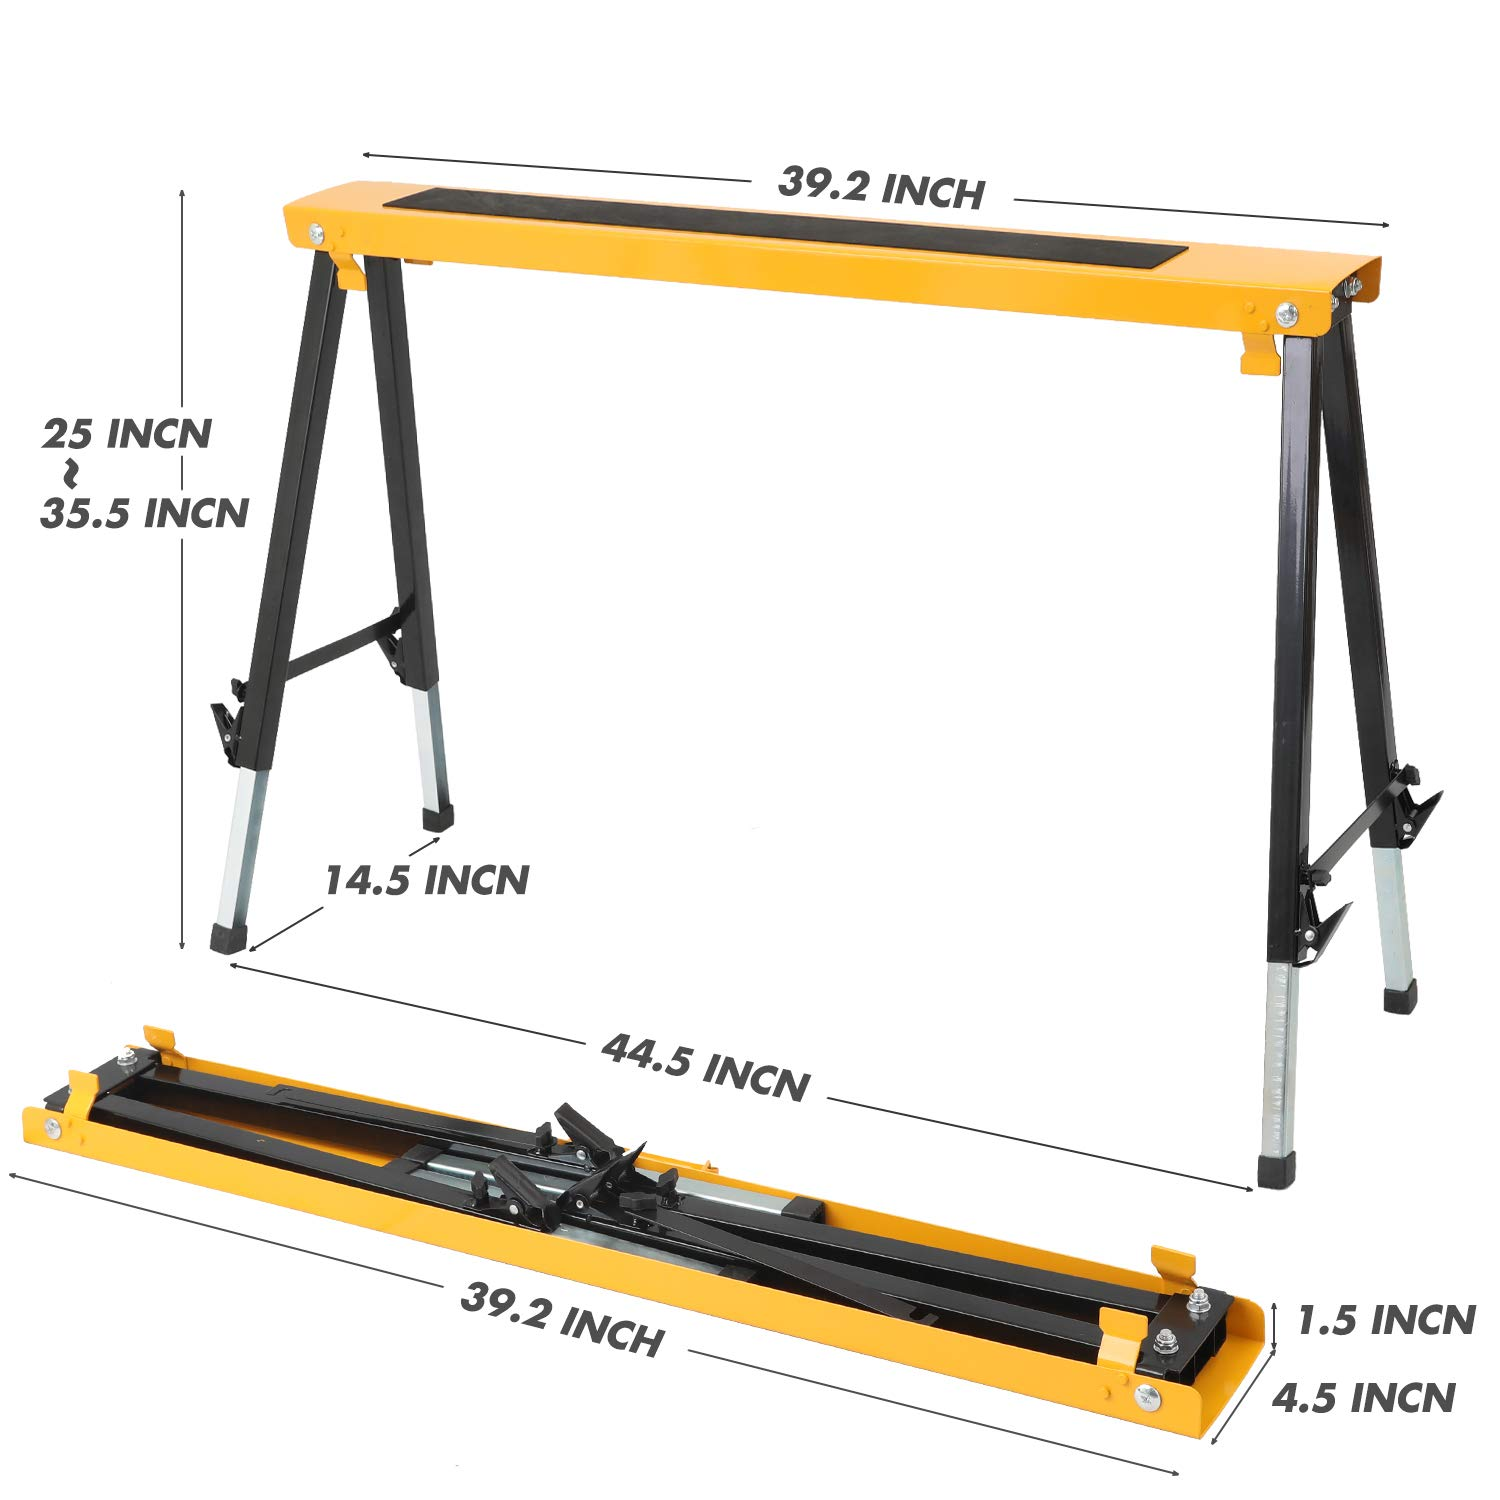 2 Pack Adjustable Saw Horse w/Clamps and Handle Heavy Duty Folding Portable Sawhorse 330lbs Weight Capacity Each by Hromee (Image #4)